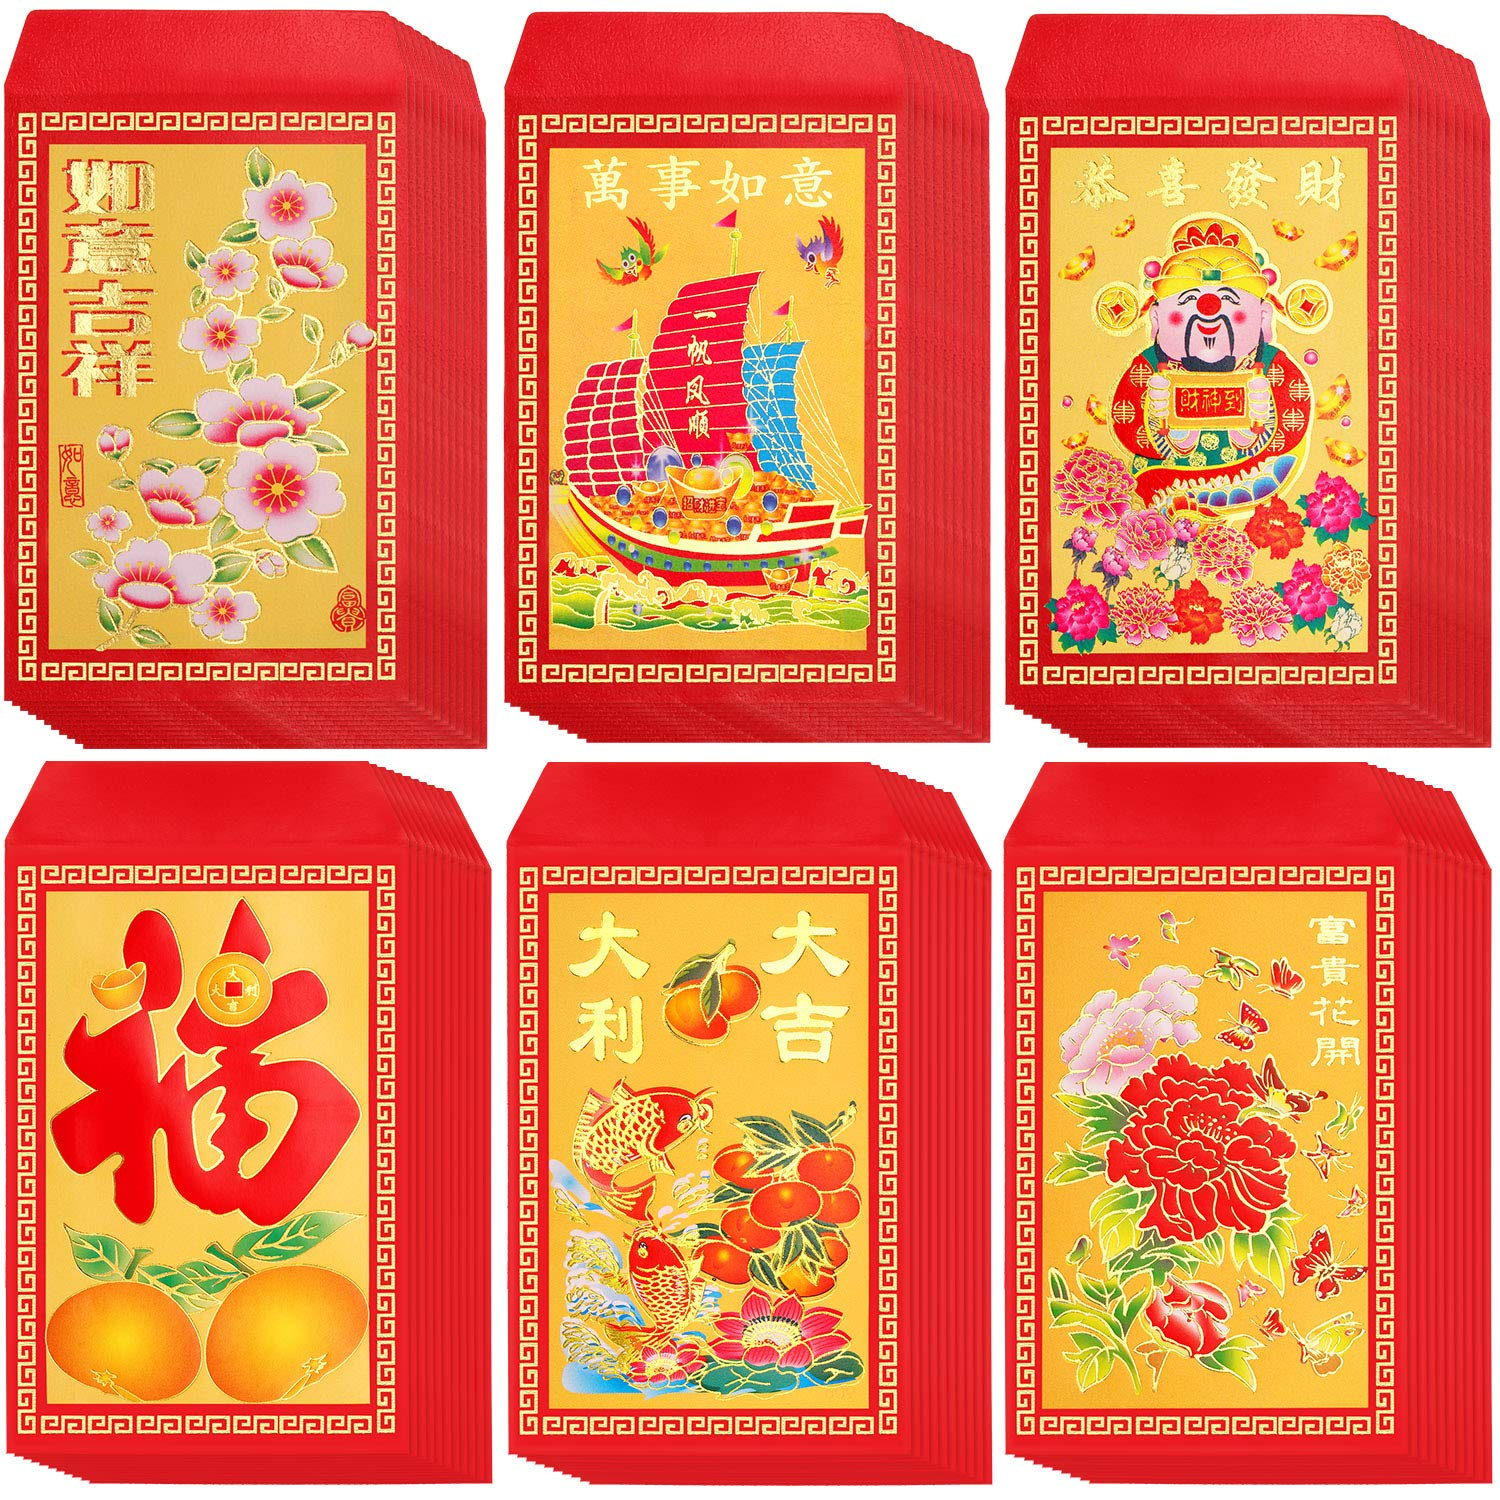 120 Pieces Chinese Red Envelopes Hongbao Year of The Lucky Money Envelopes Money Pockets for Party and Chinese New Year, 4.72 x 2.75 Inch (Flower, Sailboat)